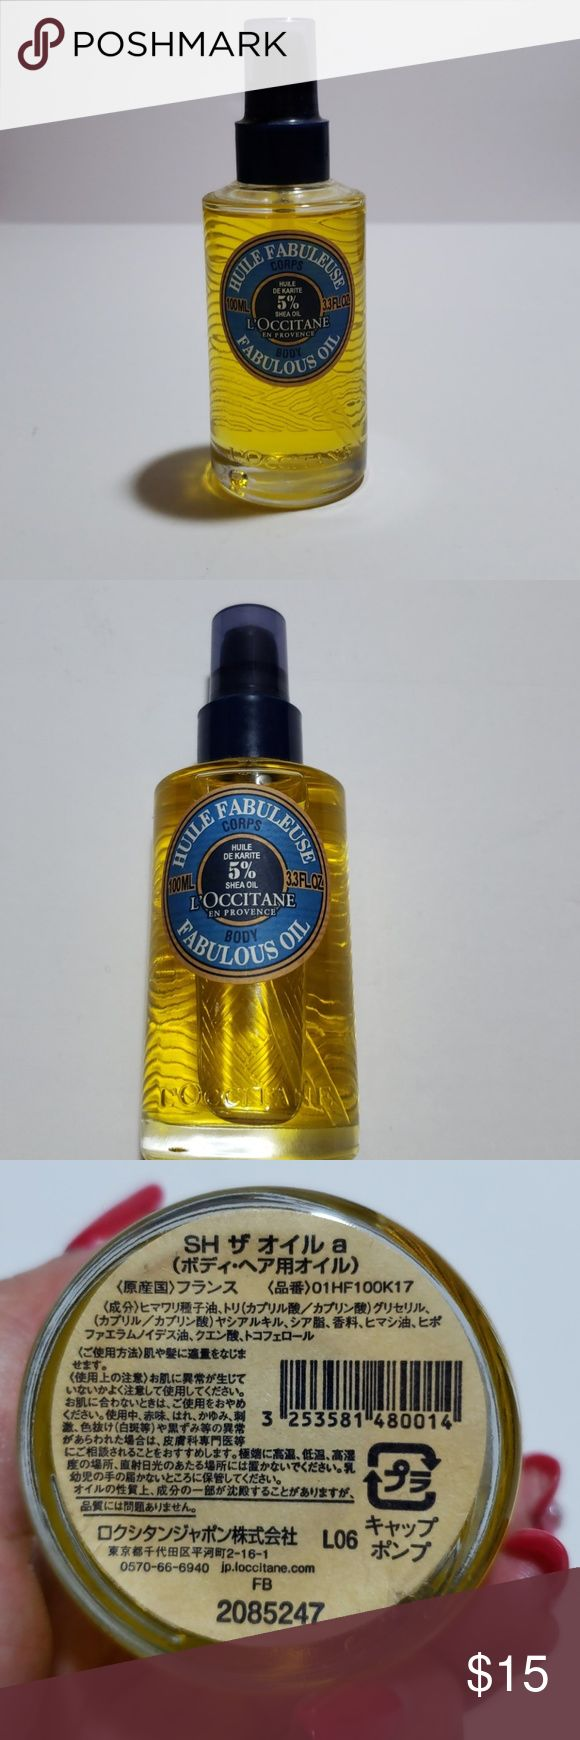 Loccitane shea fabulous oil Loccitane, Body oil, Oils